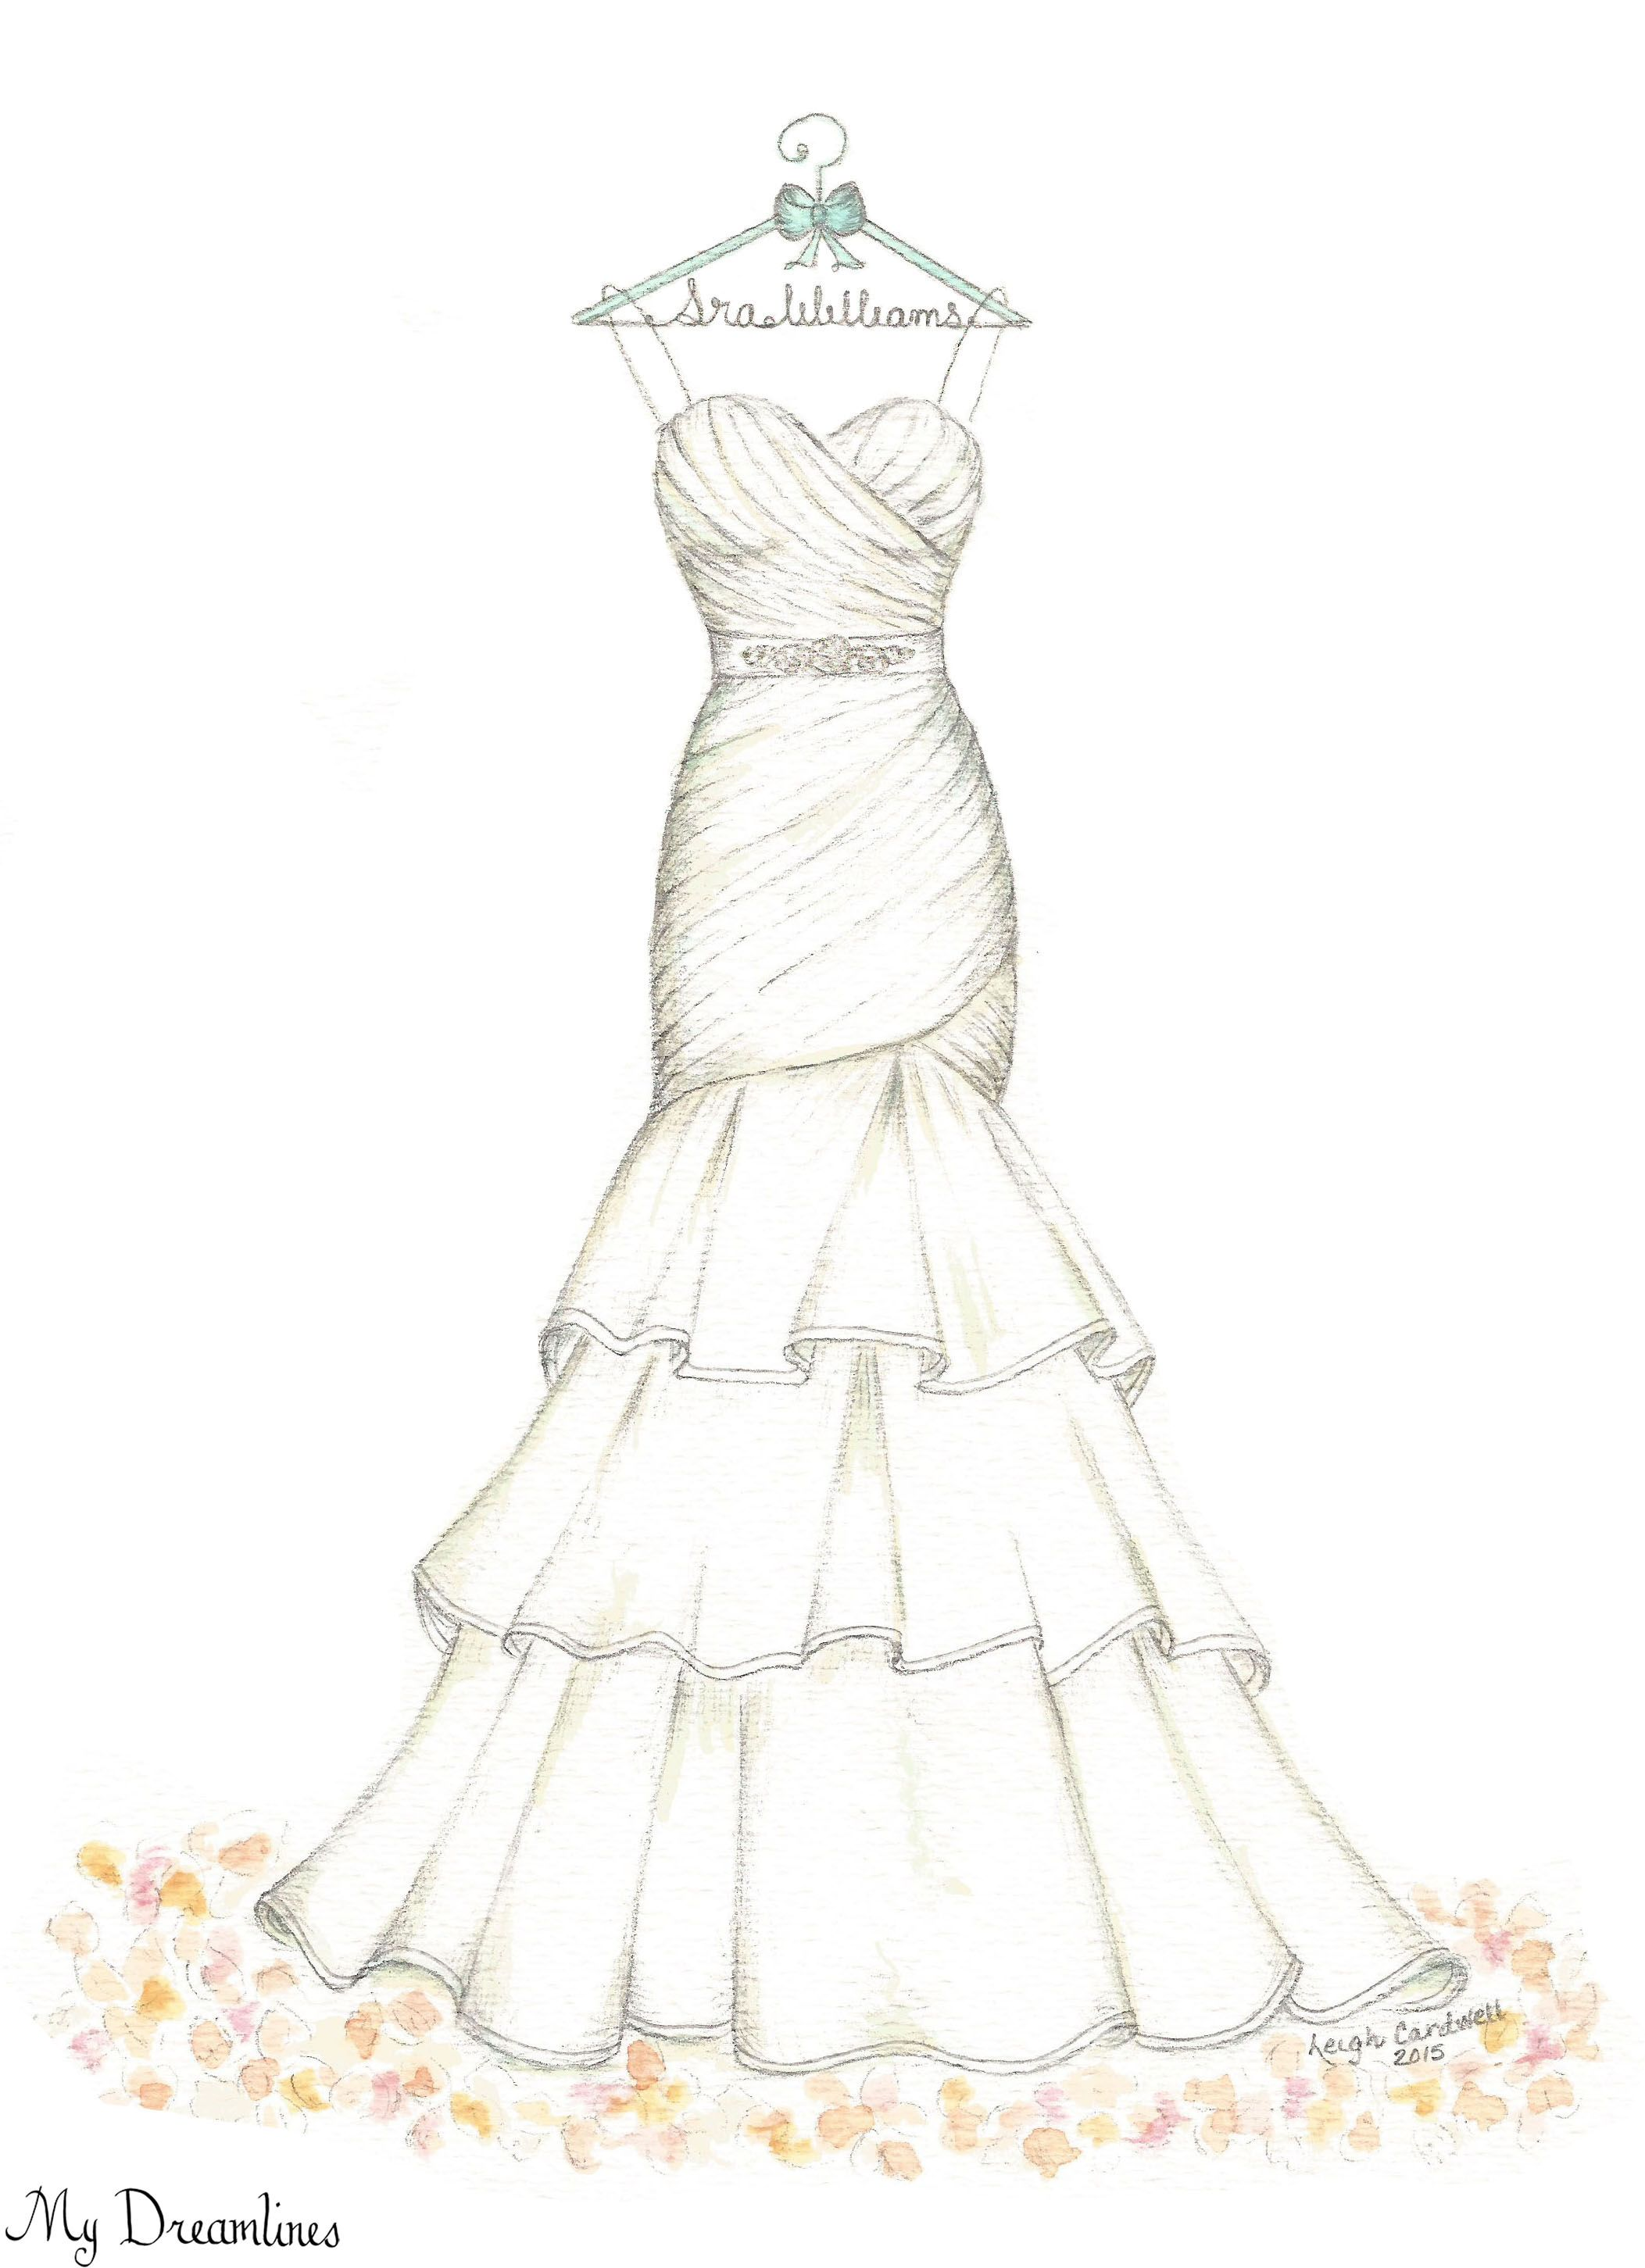 Best Gift For Wife In 2020 Unique Thoughtful Romantic Dress Design Drawing Wedding Dress Drawings Wedding Dress Sketches